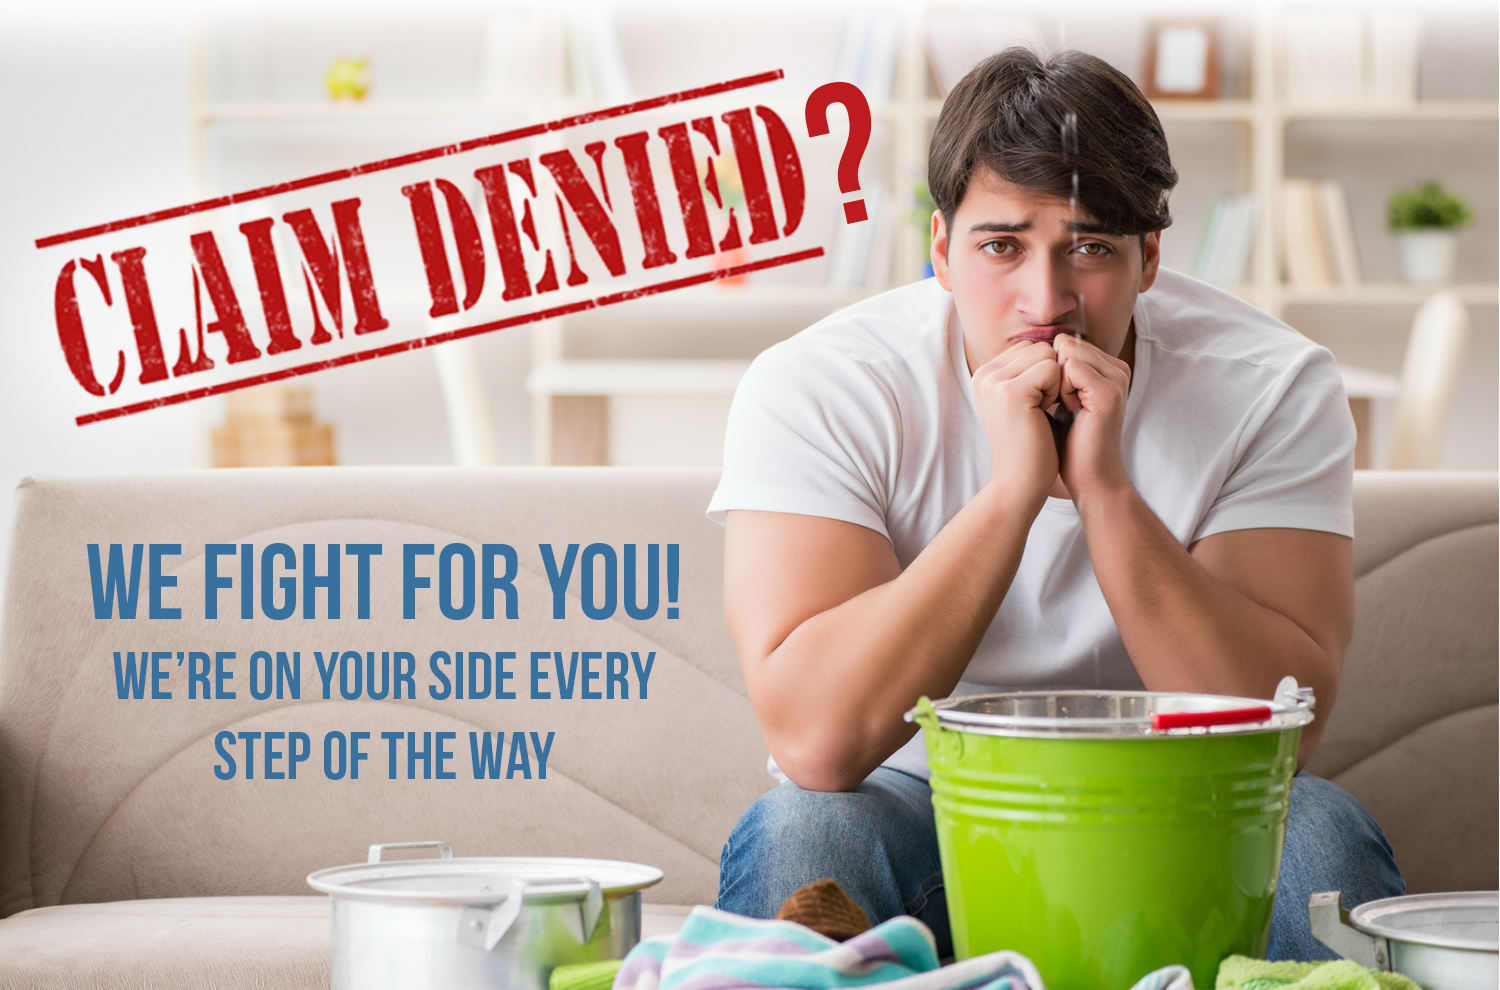 Insurance Claim Denied? We fight for you. Claim your settlement